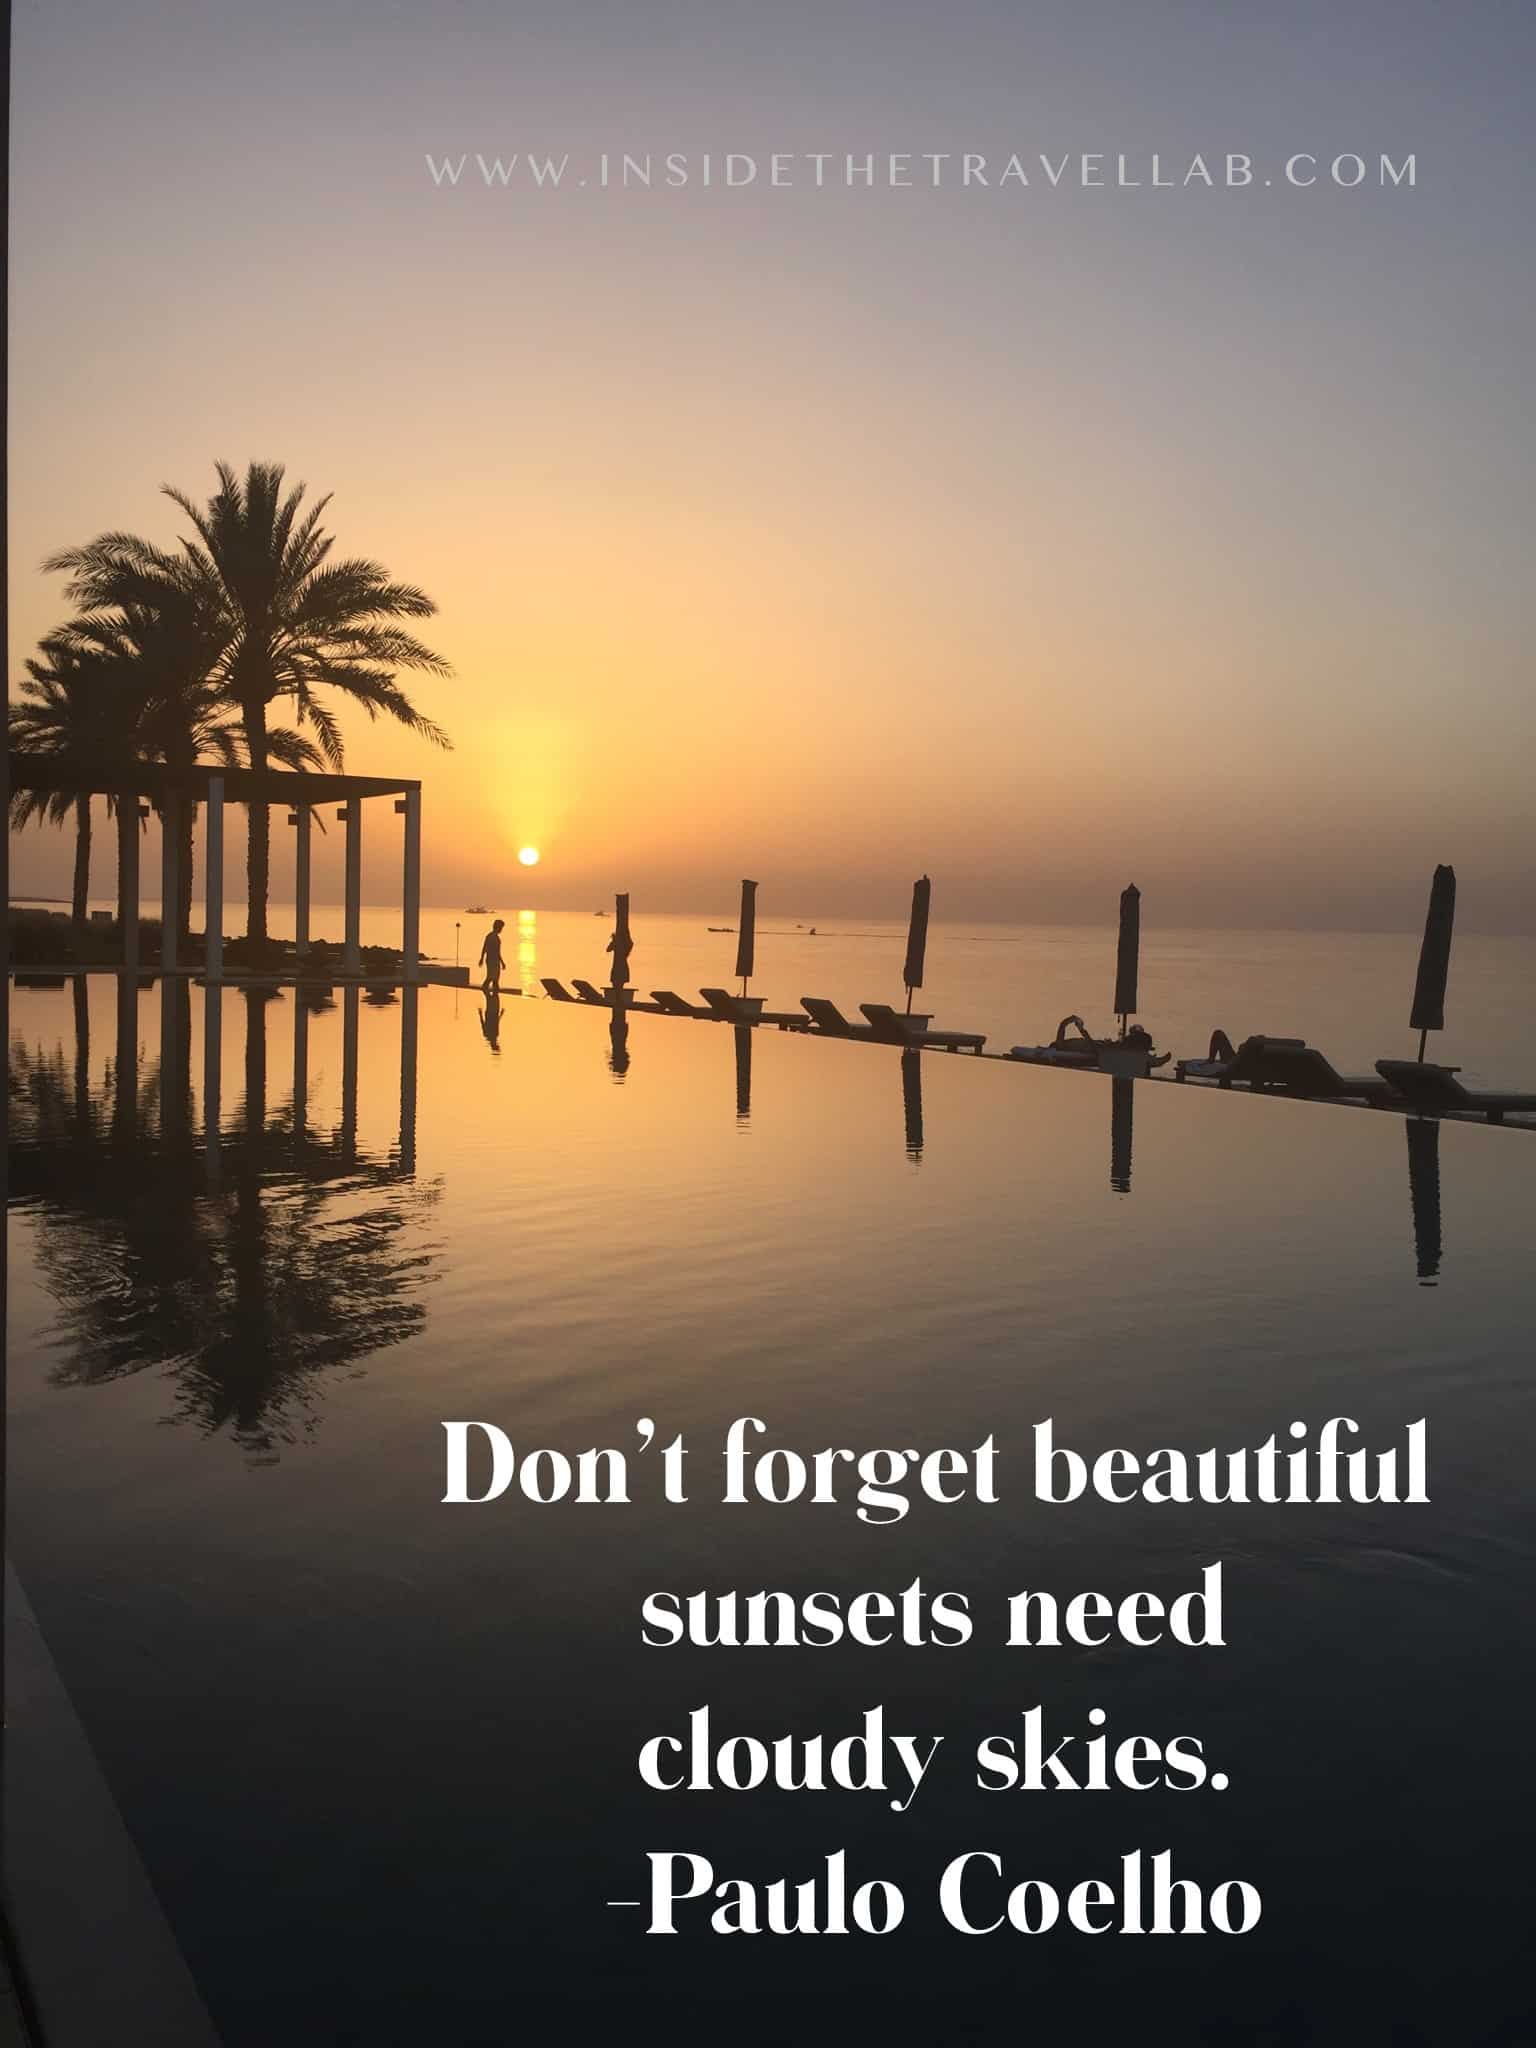 Sunset captions and sunset quotes - don't forget beautiful sunsets need cloudy skies from Paulo Coelho